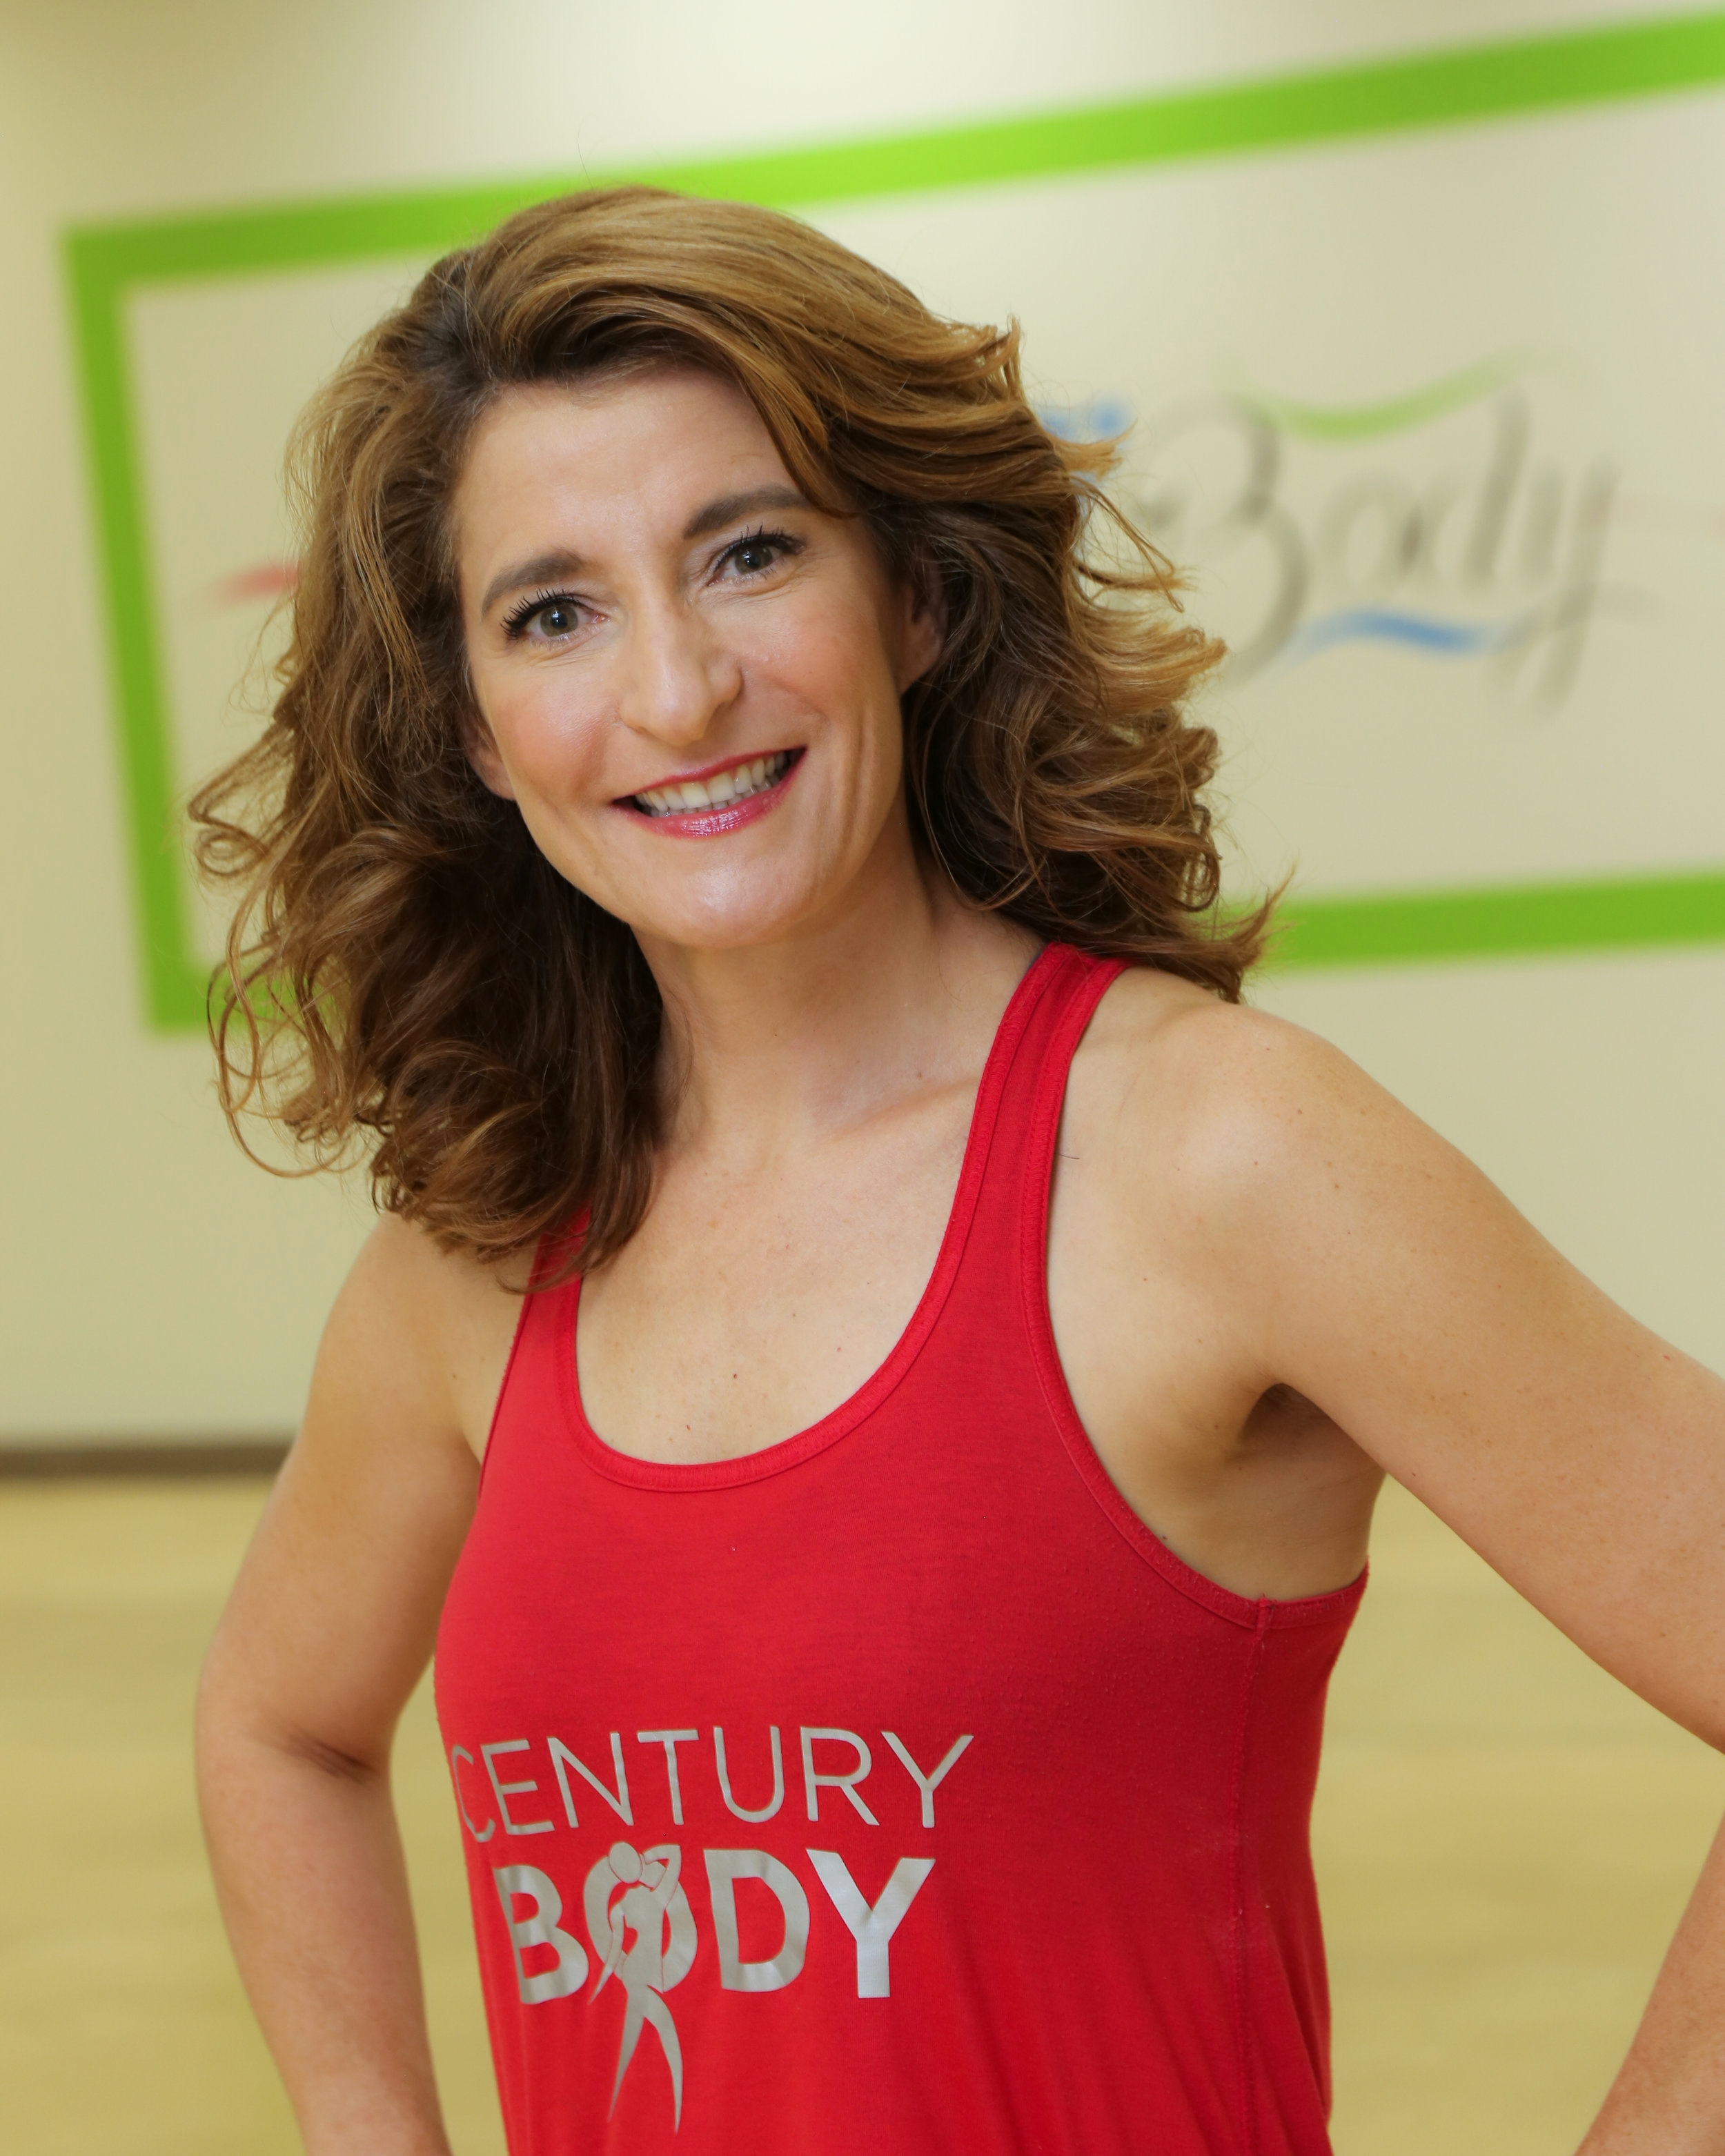 Deb Taylor   My Zumba® Fitness love story started in 2013 when I took my first Zumba® Fitness class at the urging of fellow instructor Bill Newton. I. Was. Hooked. I love everything about Zumba® Fitness -- the music, the moves, how it makes me feel, the fun and the people! No matter what kind of day I'm having, Zumba® Fitness always makes it better. The same goes for Century Body, a place where you are accepted for who you are no matter where you are in your fitness journey. Now as an instructor, I LOVE dancing with students. We feed off of each other's energy. I love seeing everyone smiling and doing something that brings them so much joy. Come join the fun with me!